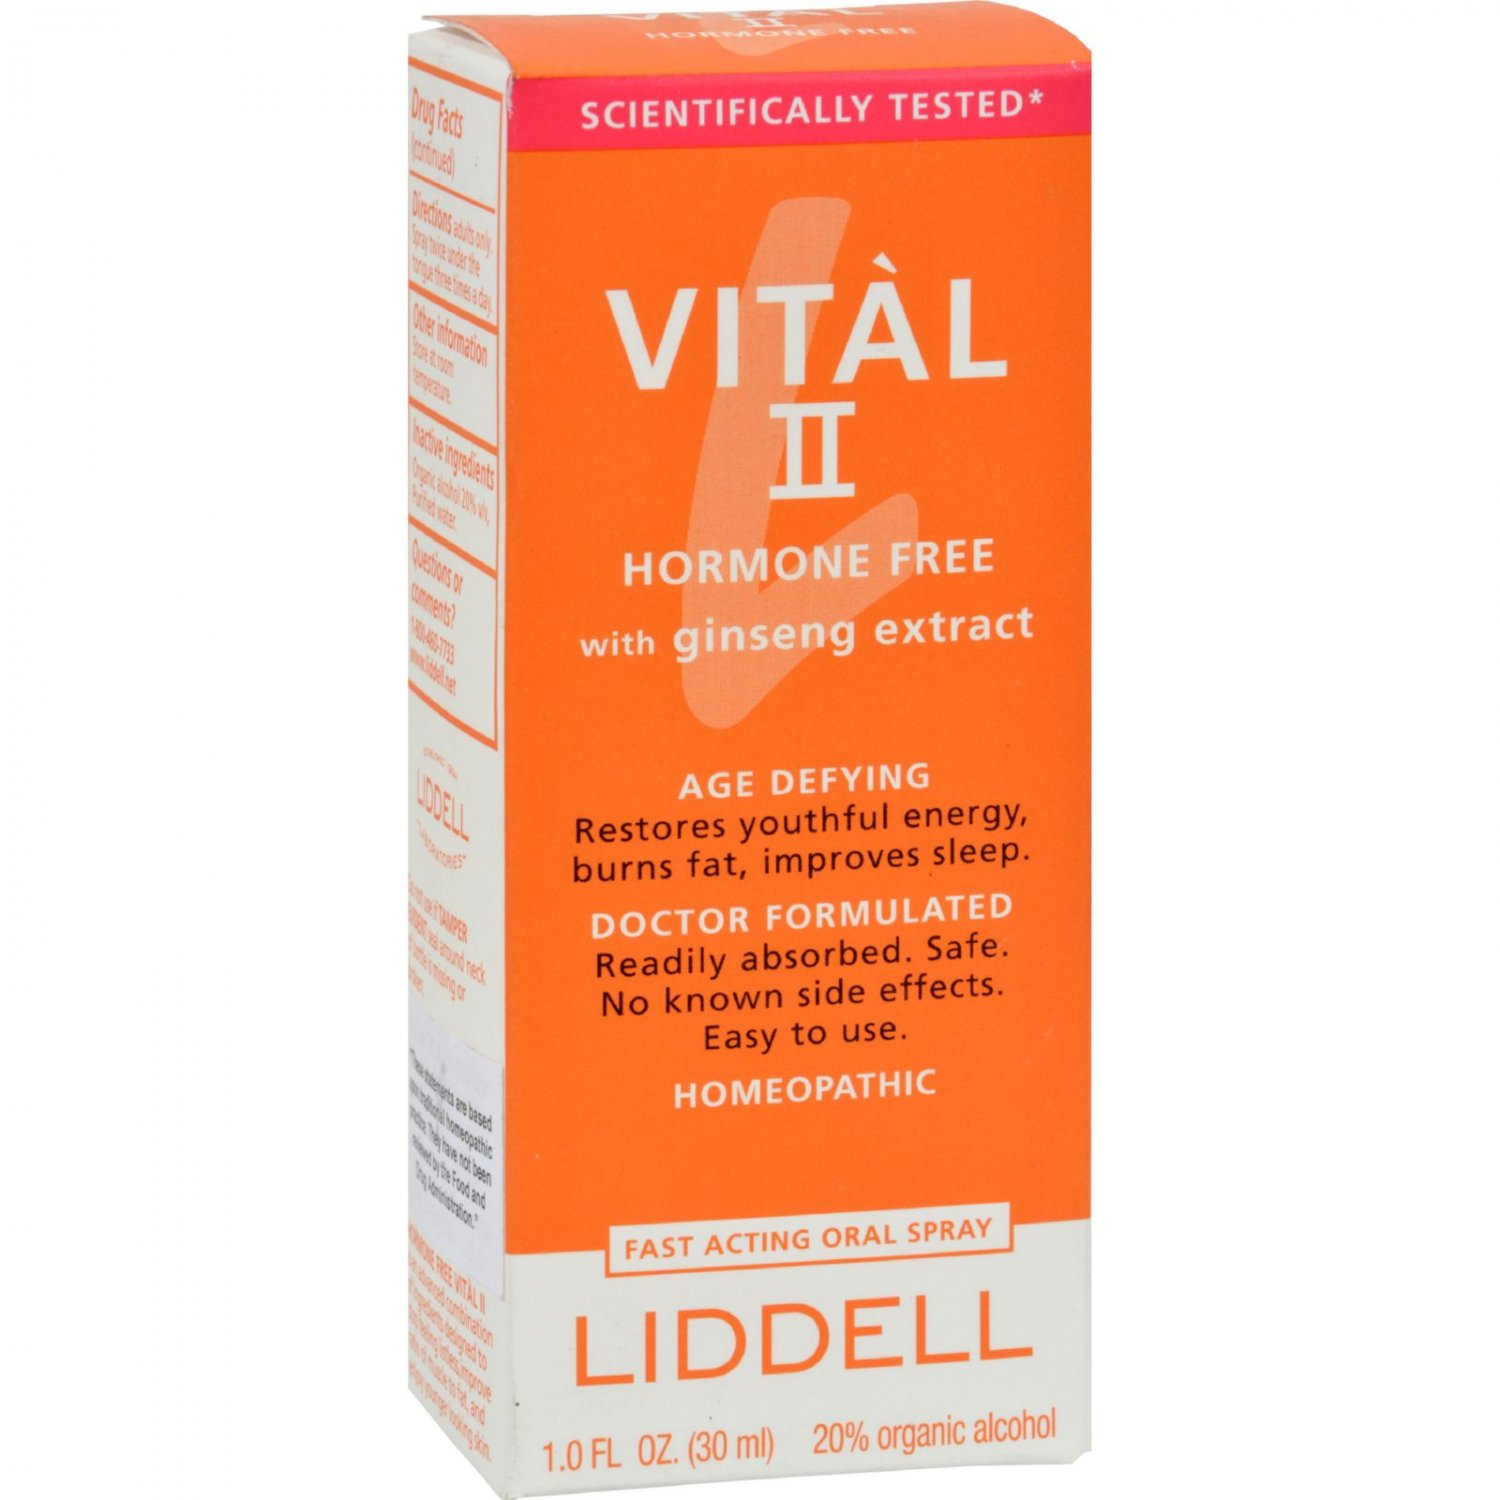 Liddell Homeopathic Vital II Homeopathic Remedy to Increase Energy - 1 oz